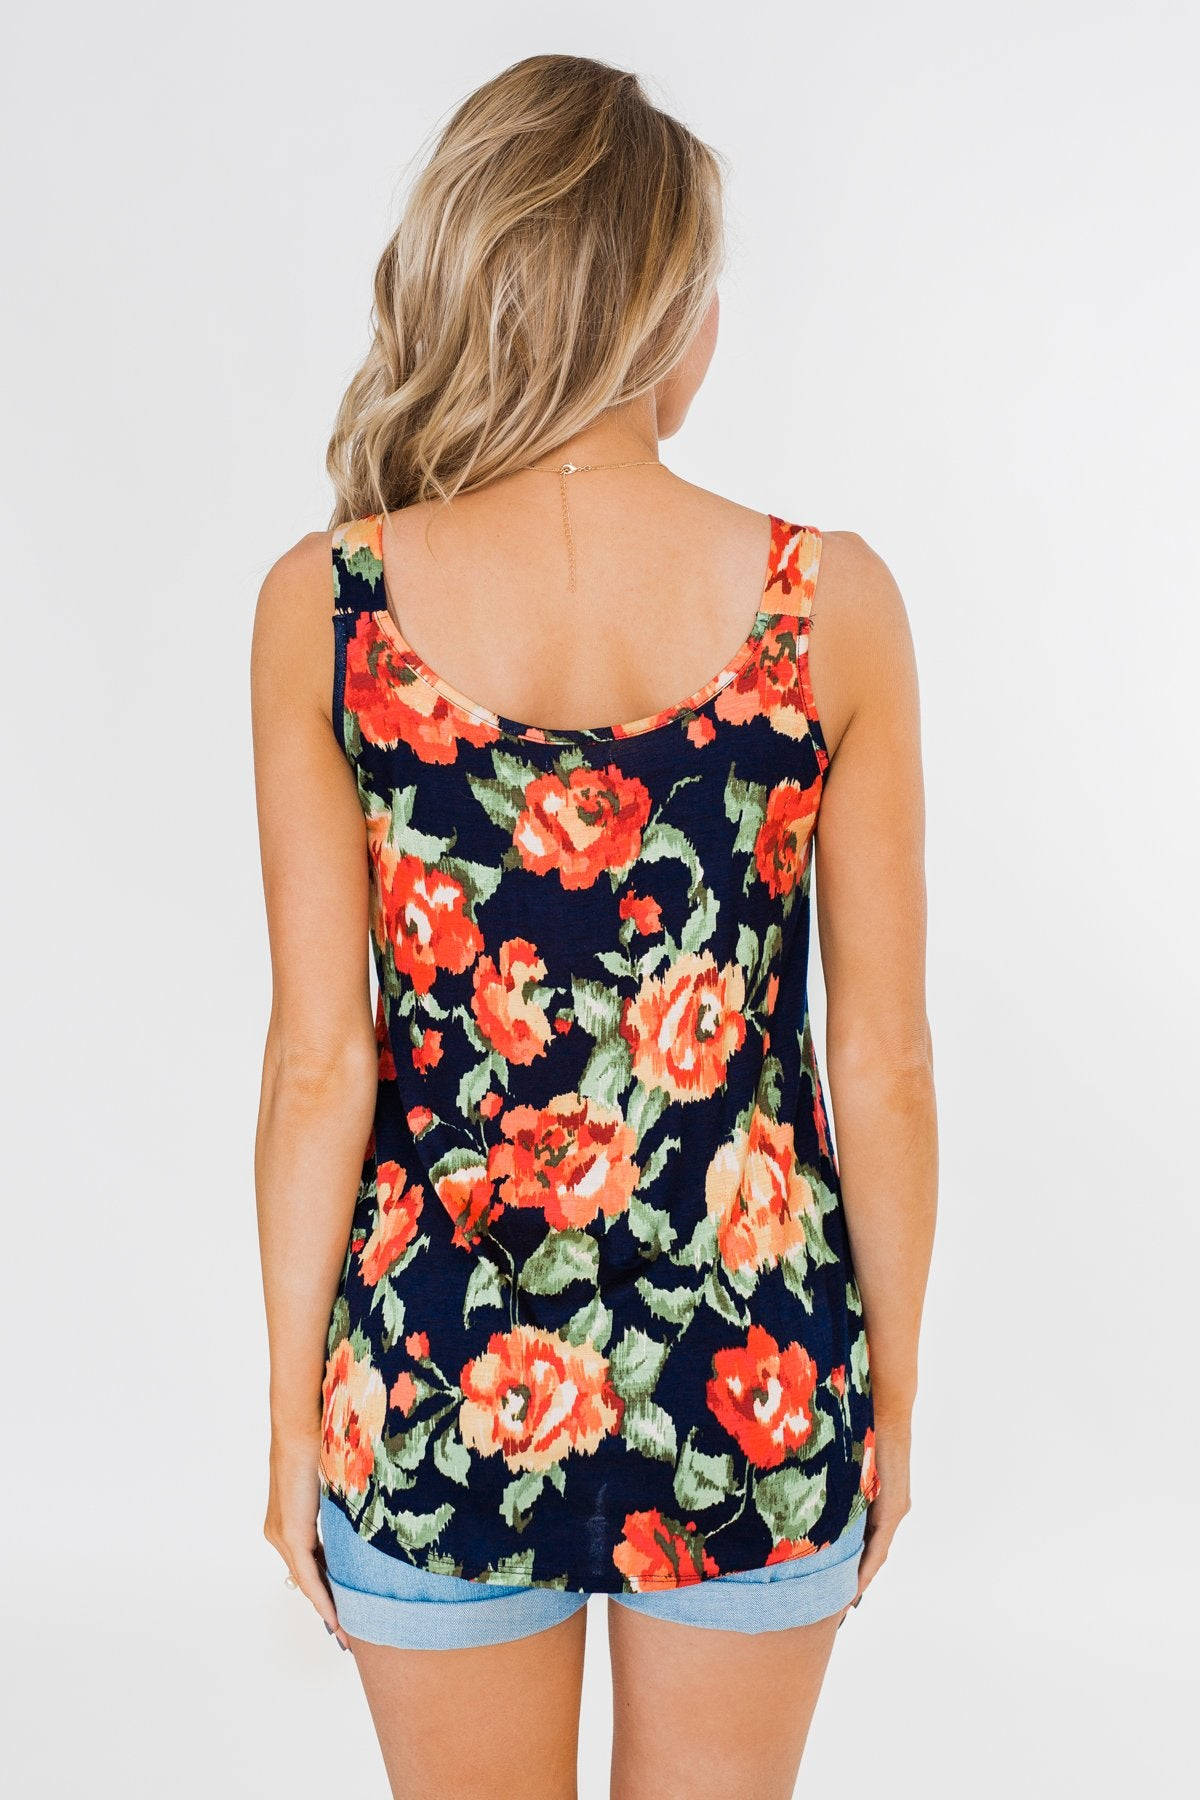 Flirty & Thriving Floral Tank Top- Navy